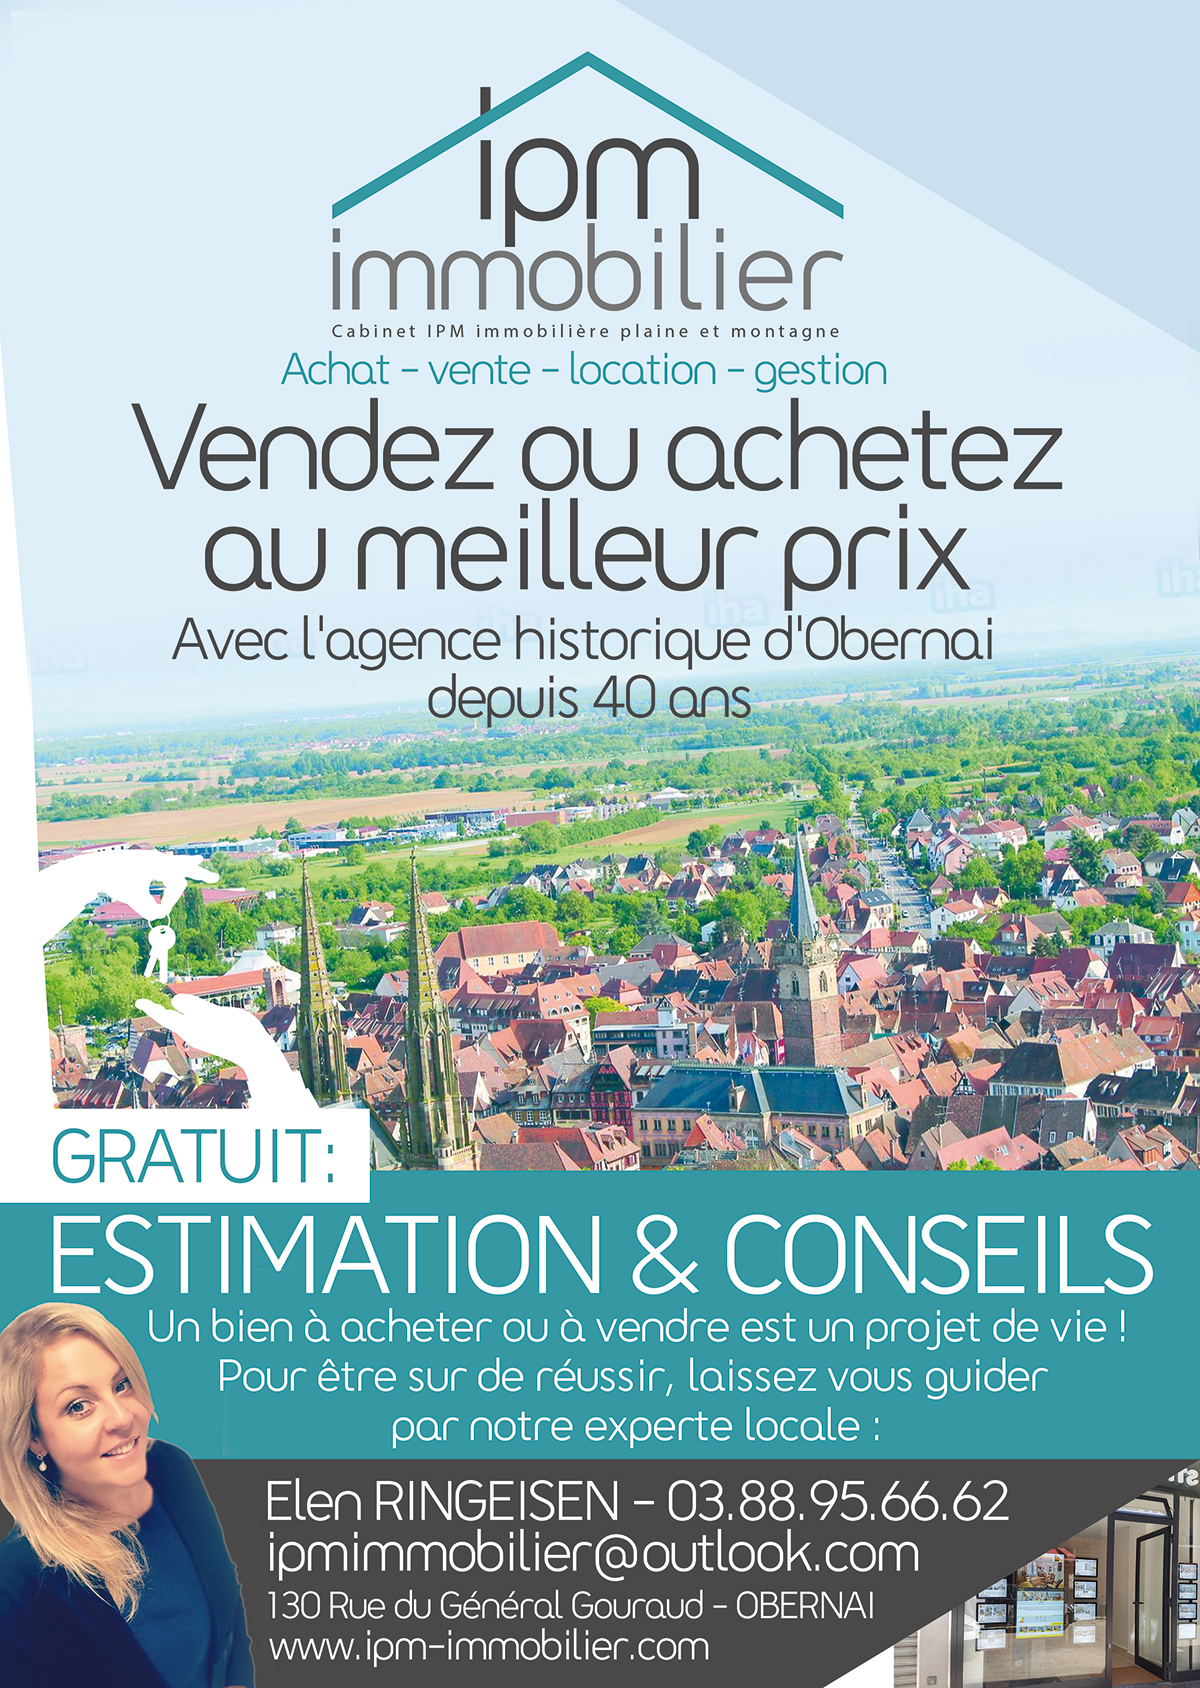 ipm-immobilier-flyer